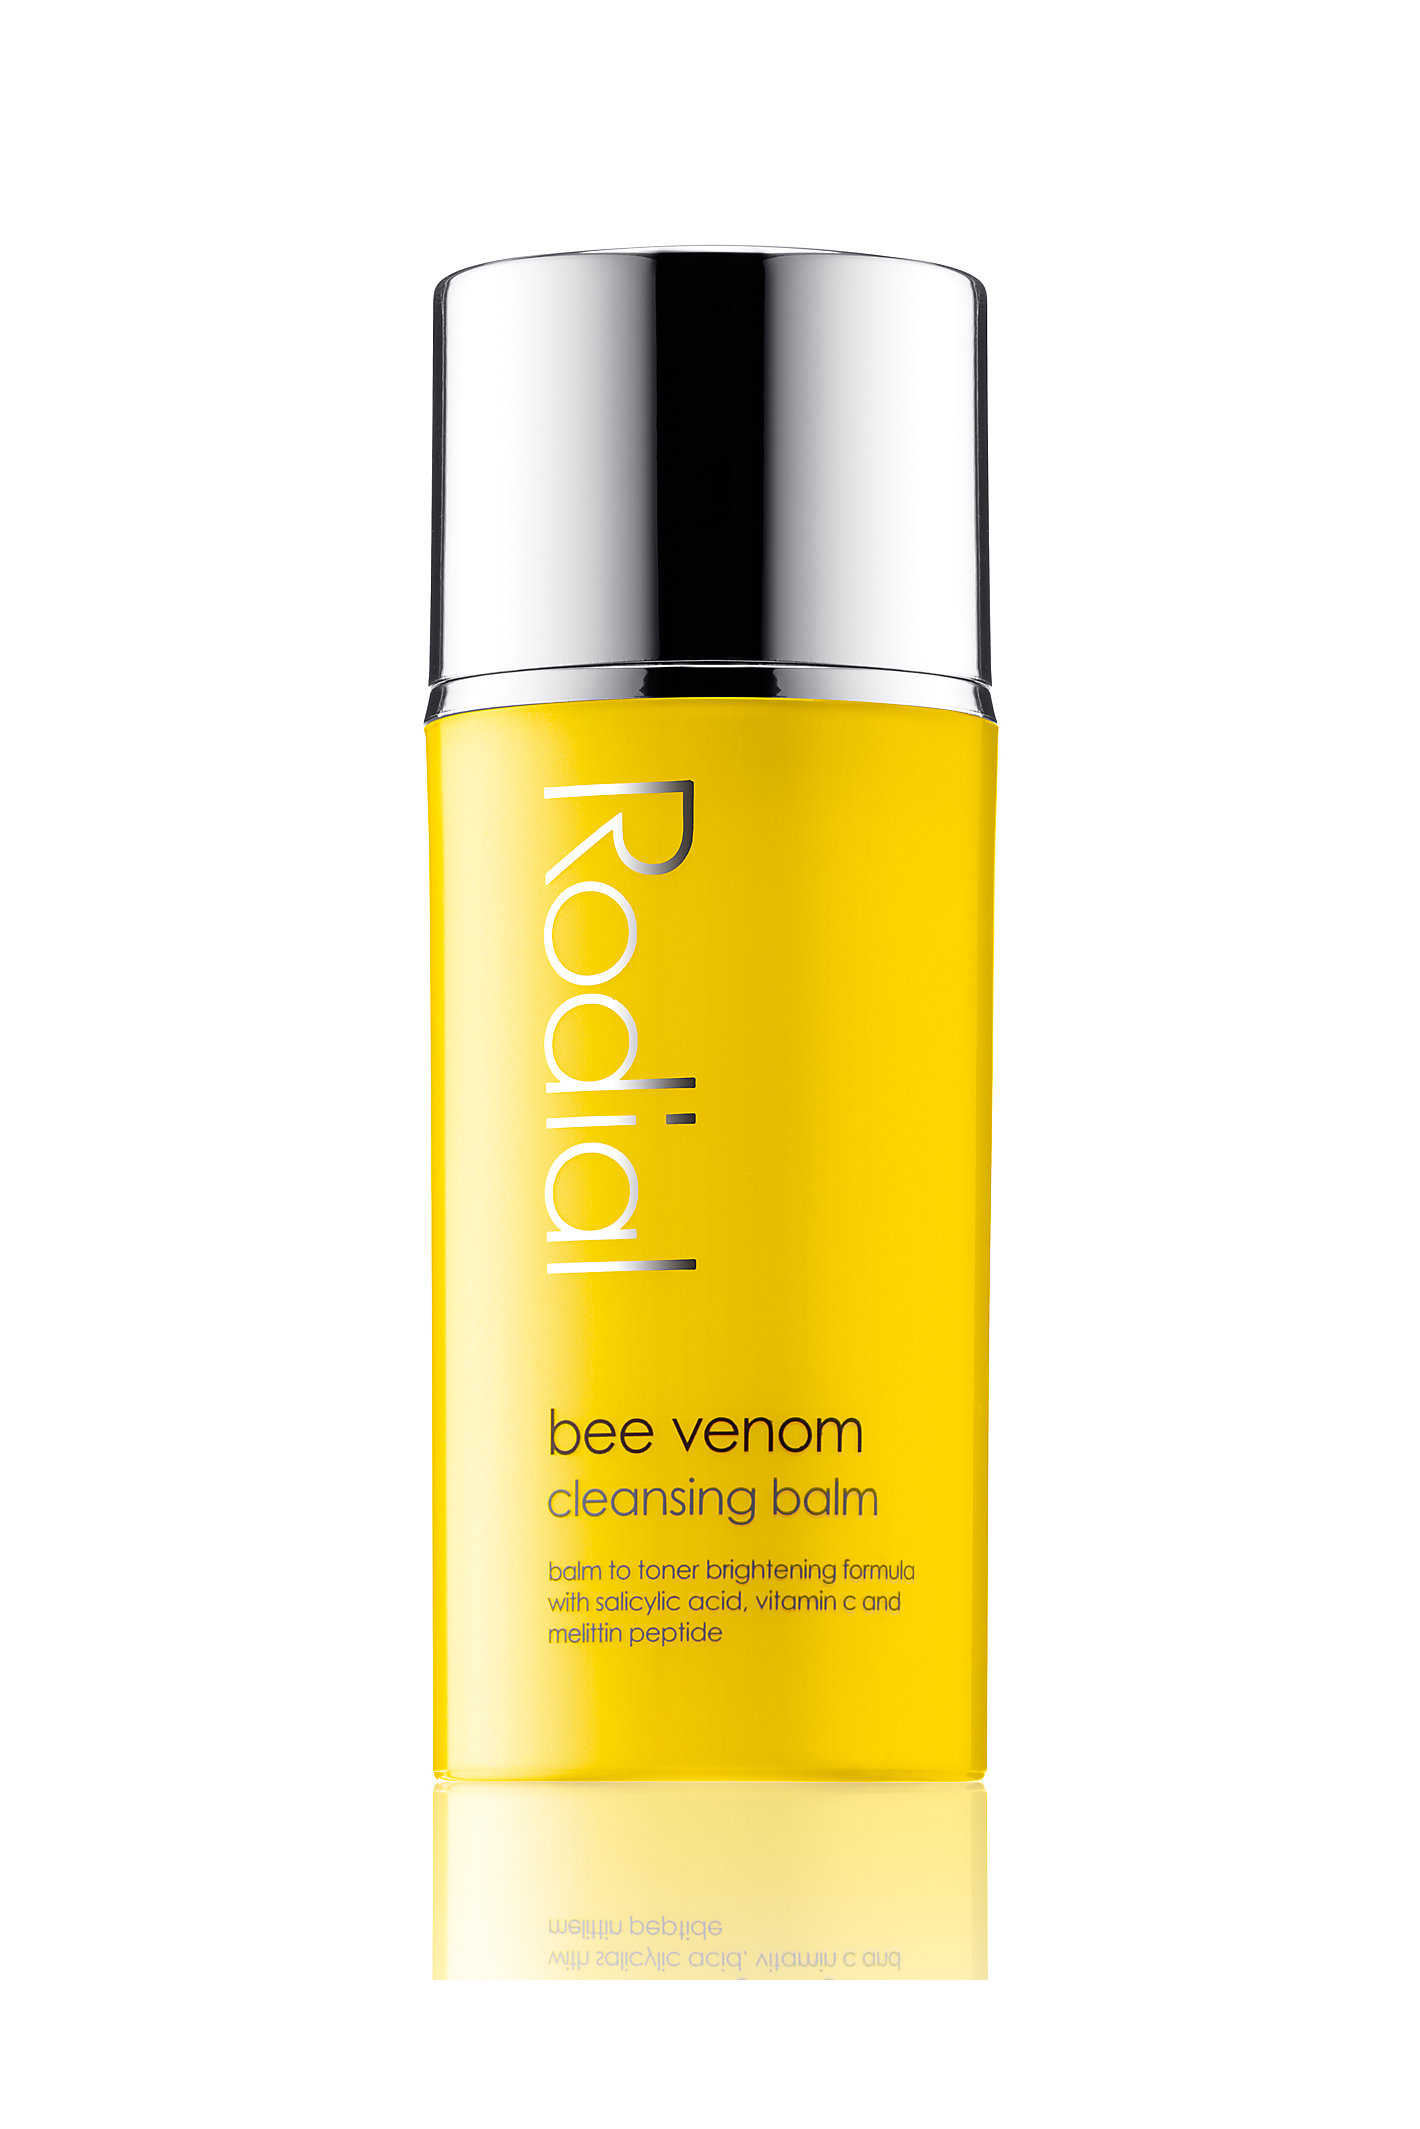 Bee Venom Cleansing Balm